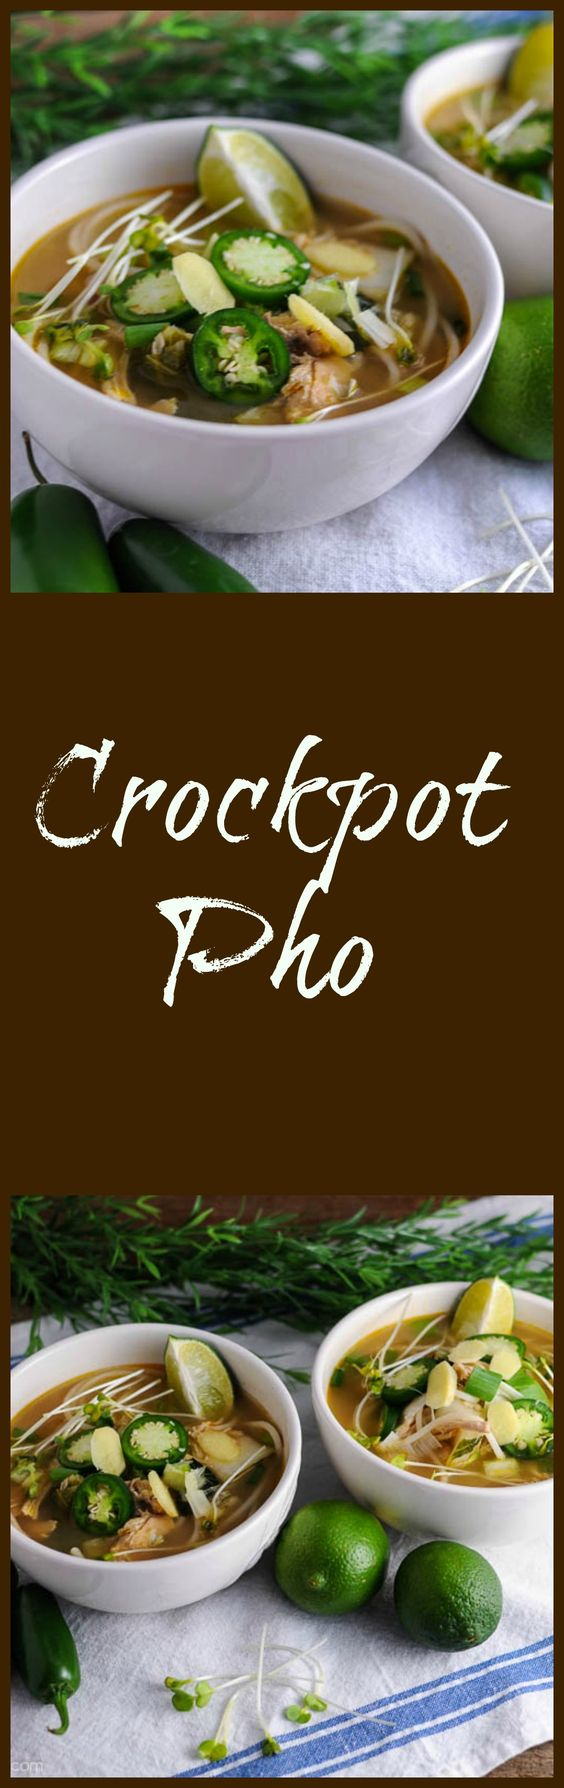 Crockpot pho recipe fish sauce chicken noodles and for Crockpot fish recipes